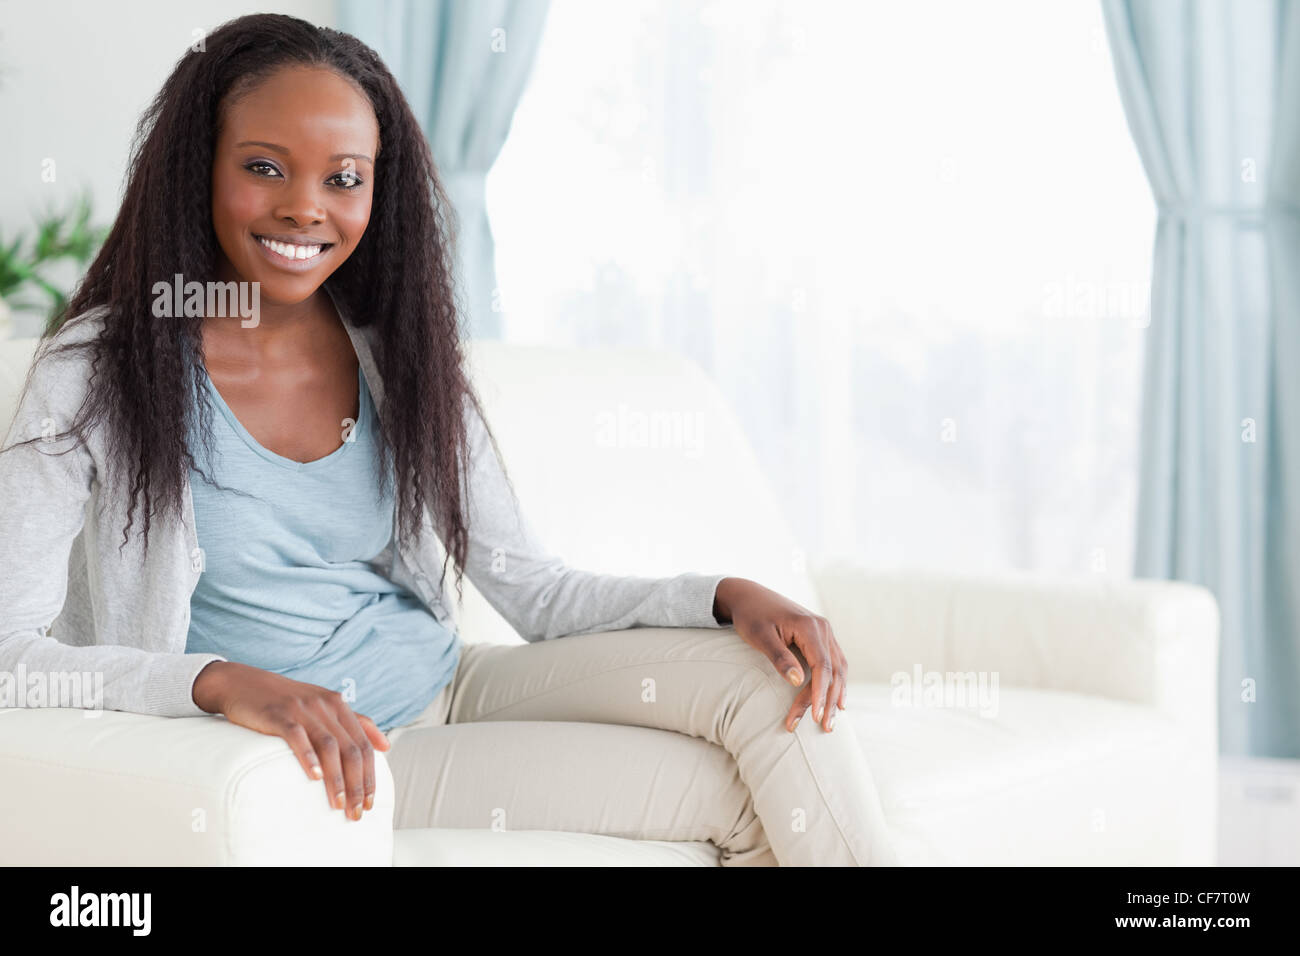 Woman sitting on sofa with legs folded - Stock Image